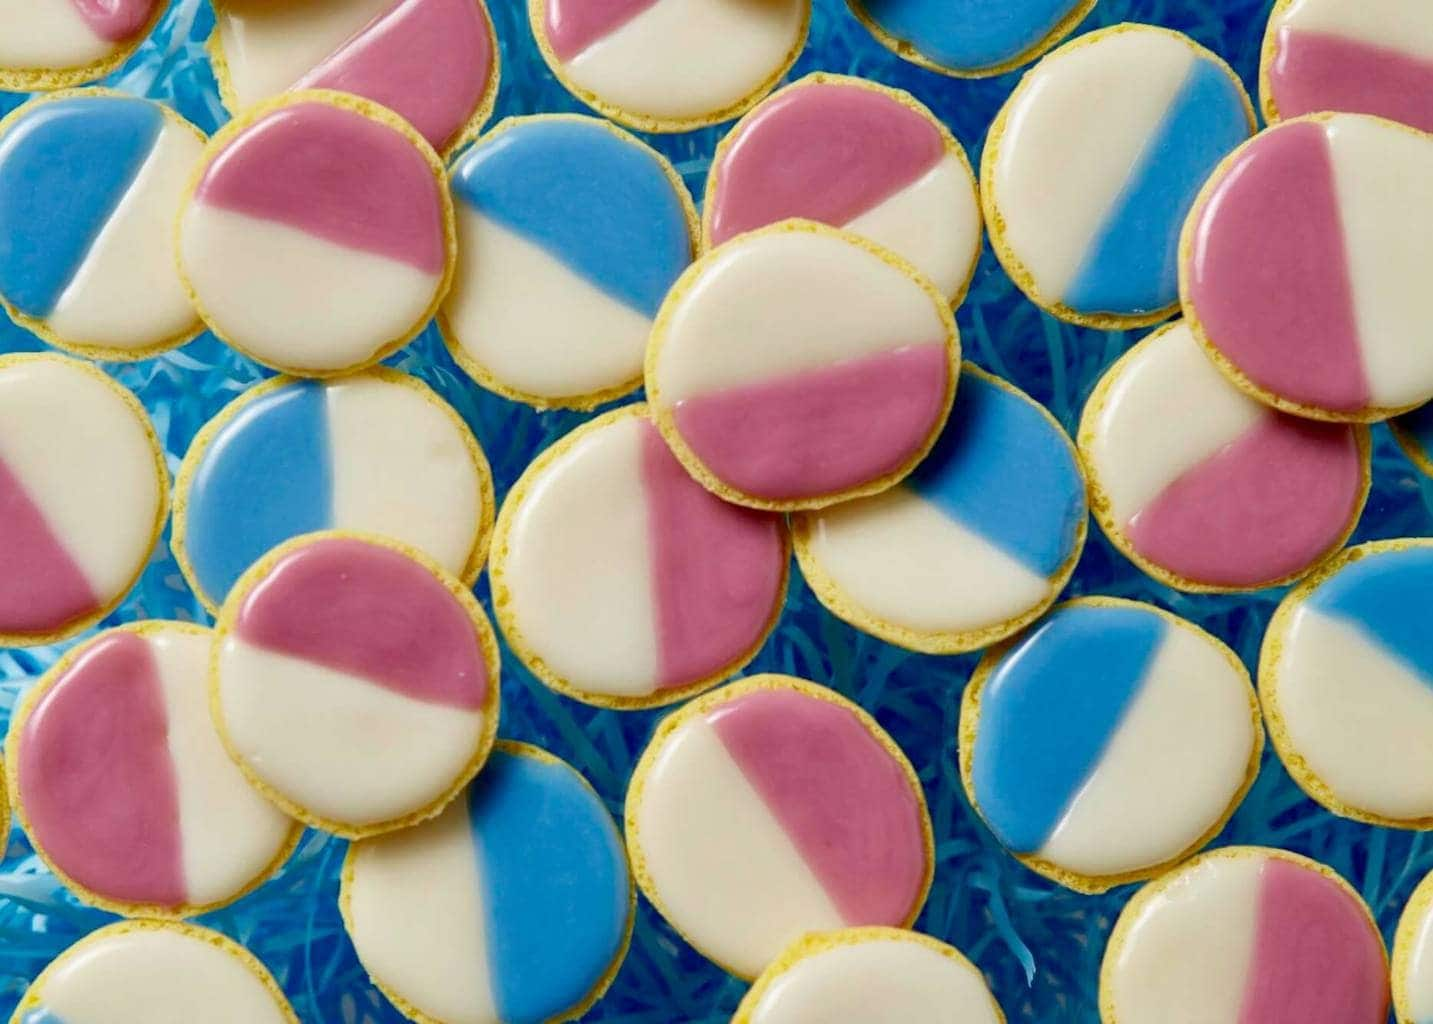 pastel black and white cookies with blue and pink